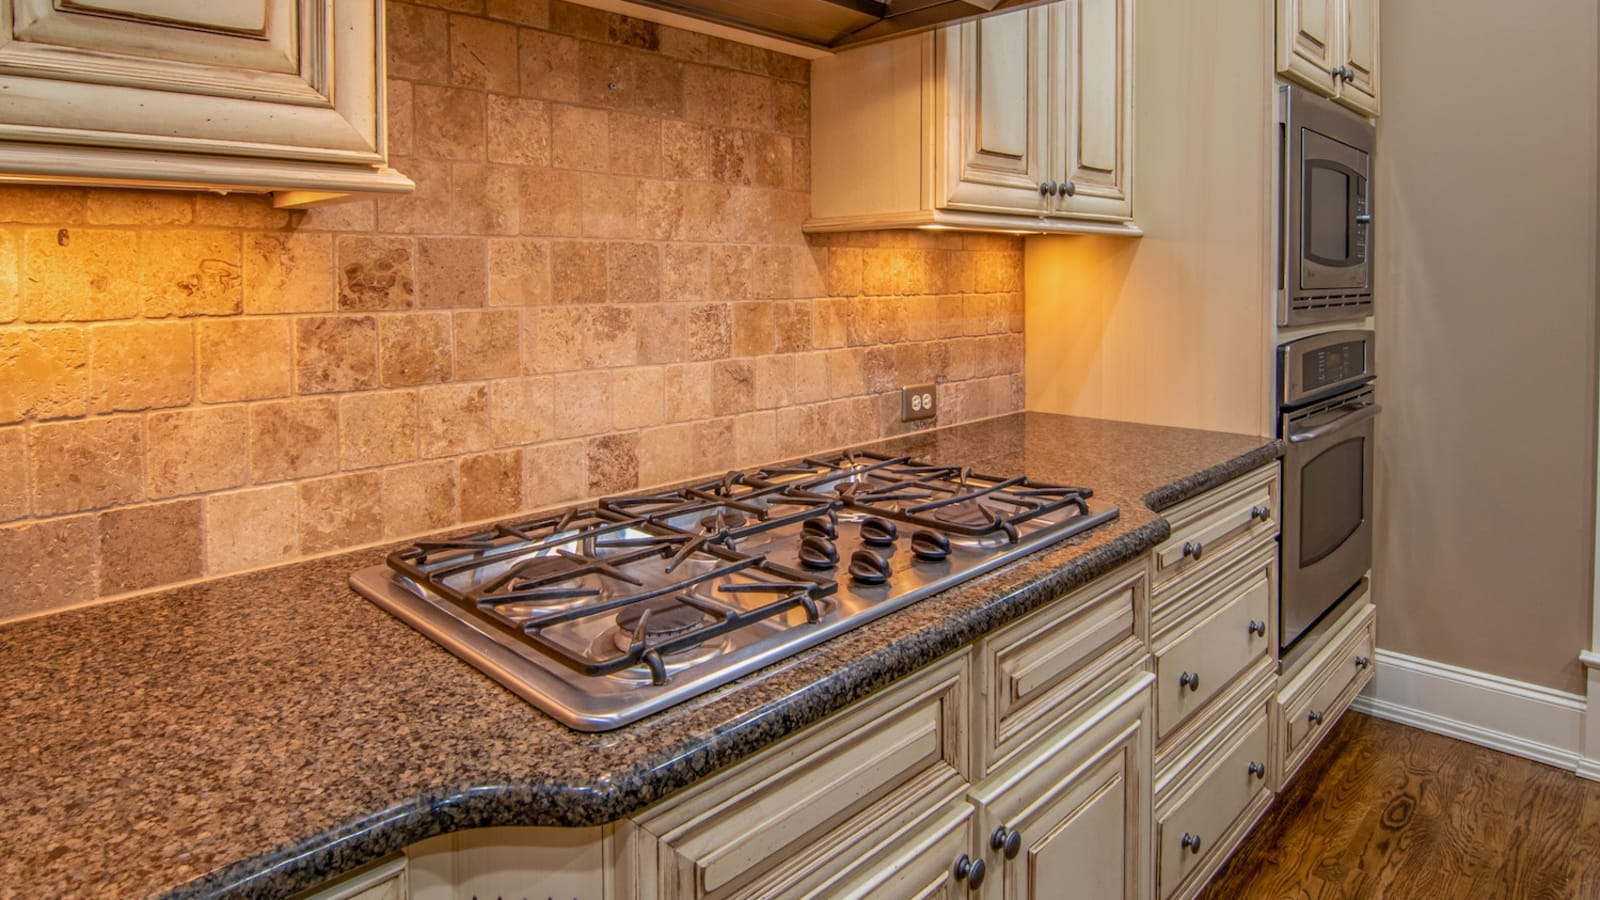 Replacing Countertops: 5 Things Every Homeowner Should Know